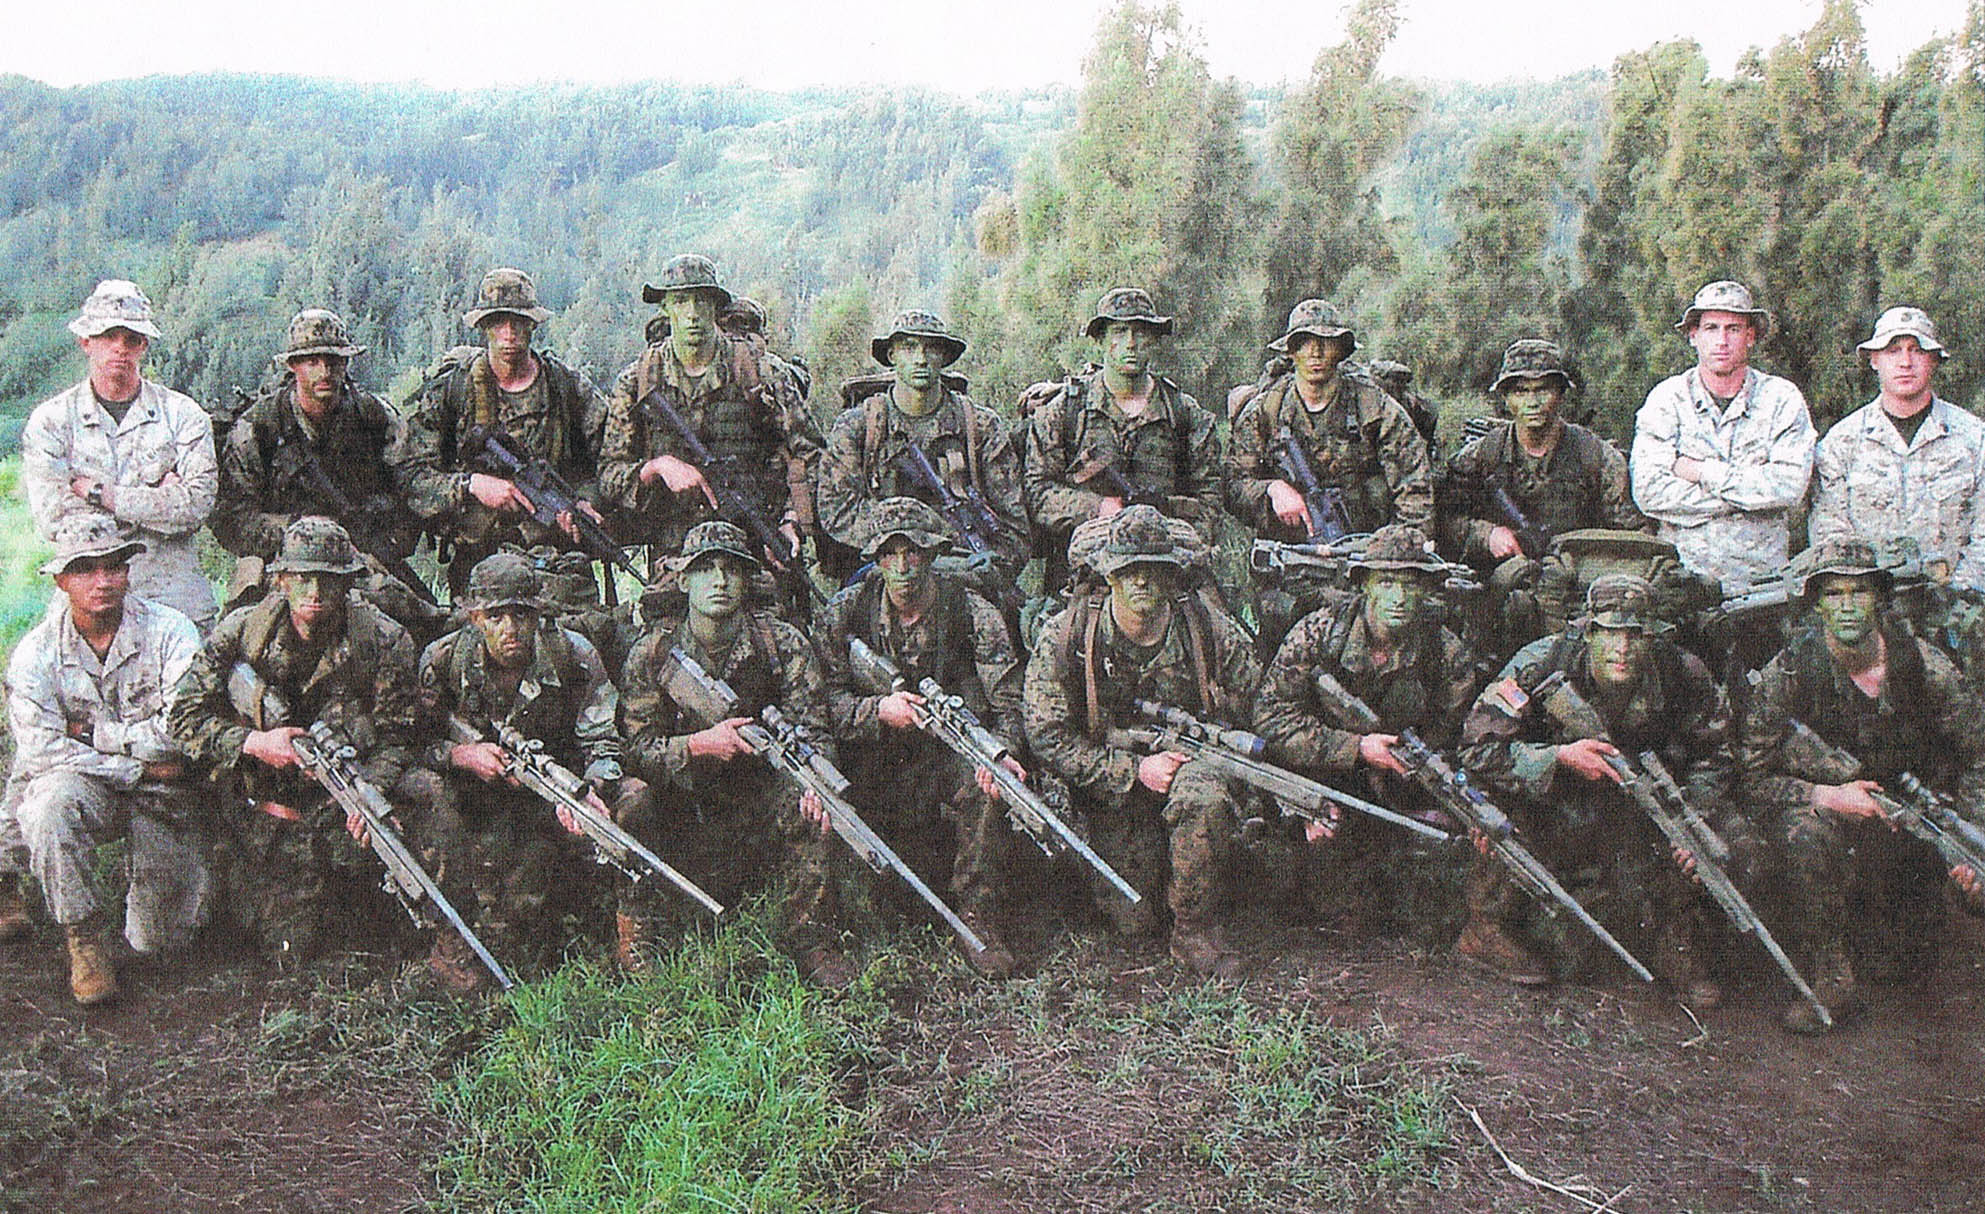 Kevin Krieger Sniper School (Pictured Front Row Fourth From The Right)- Dan's Big Brother